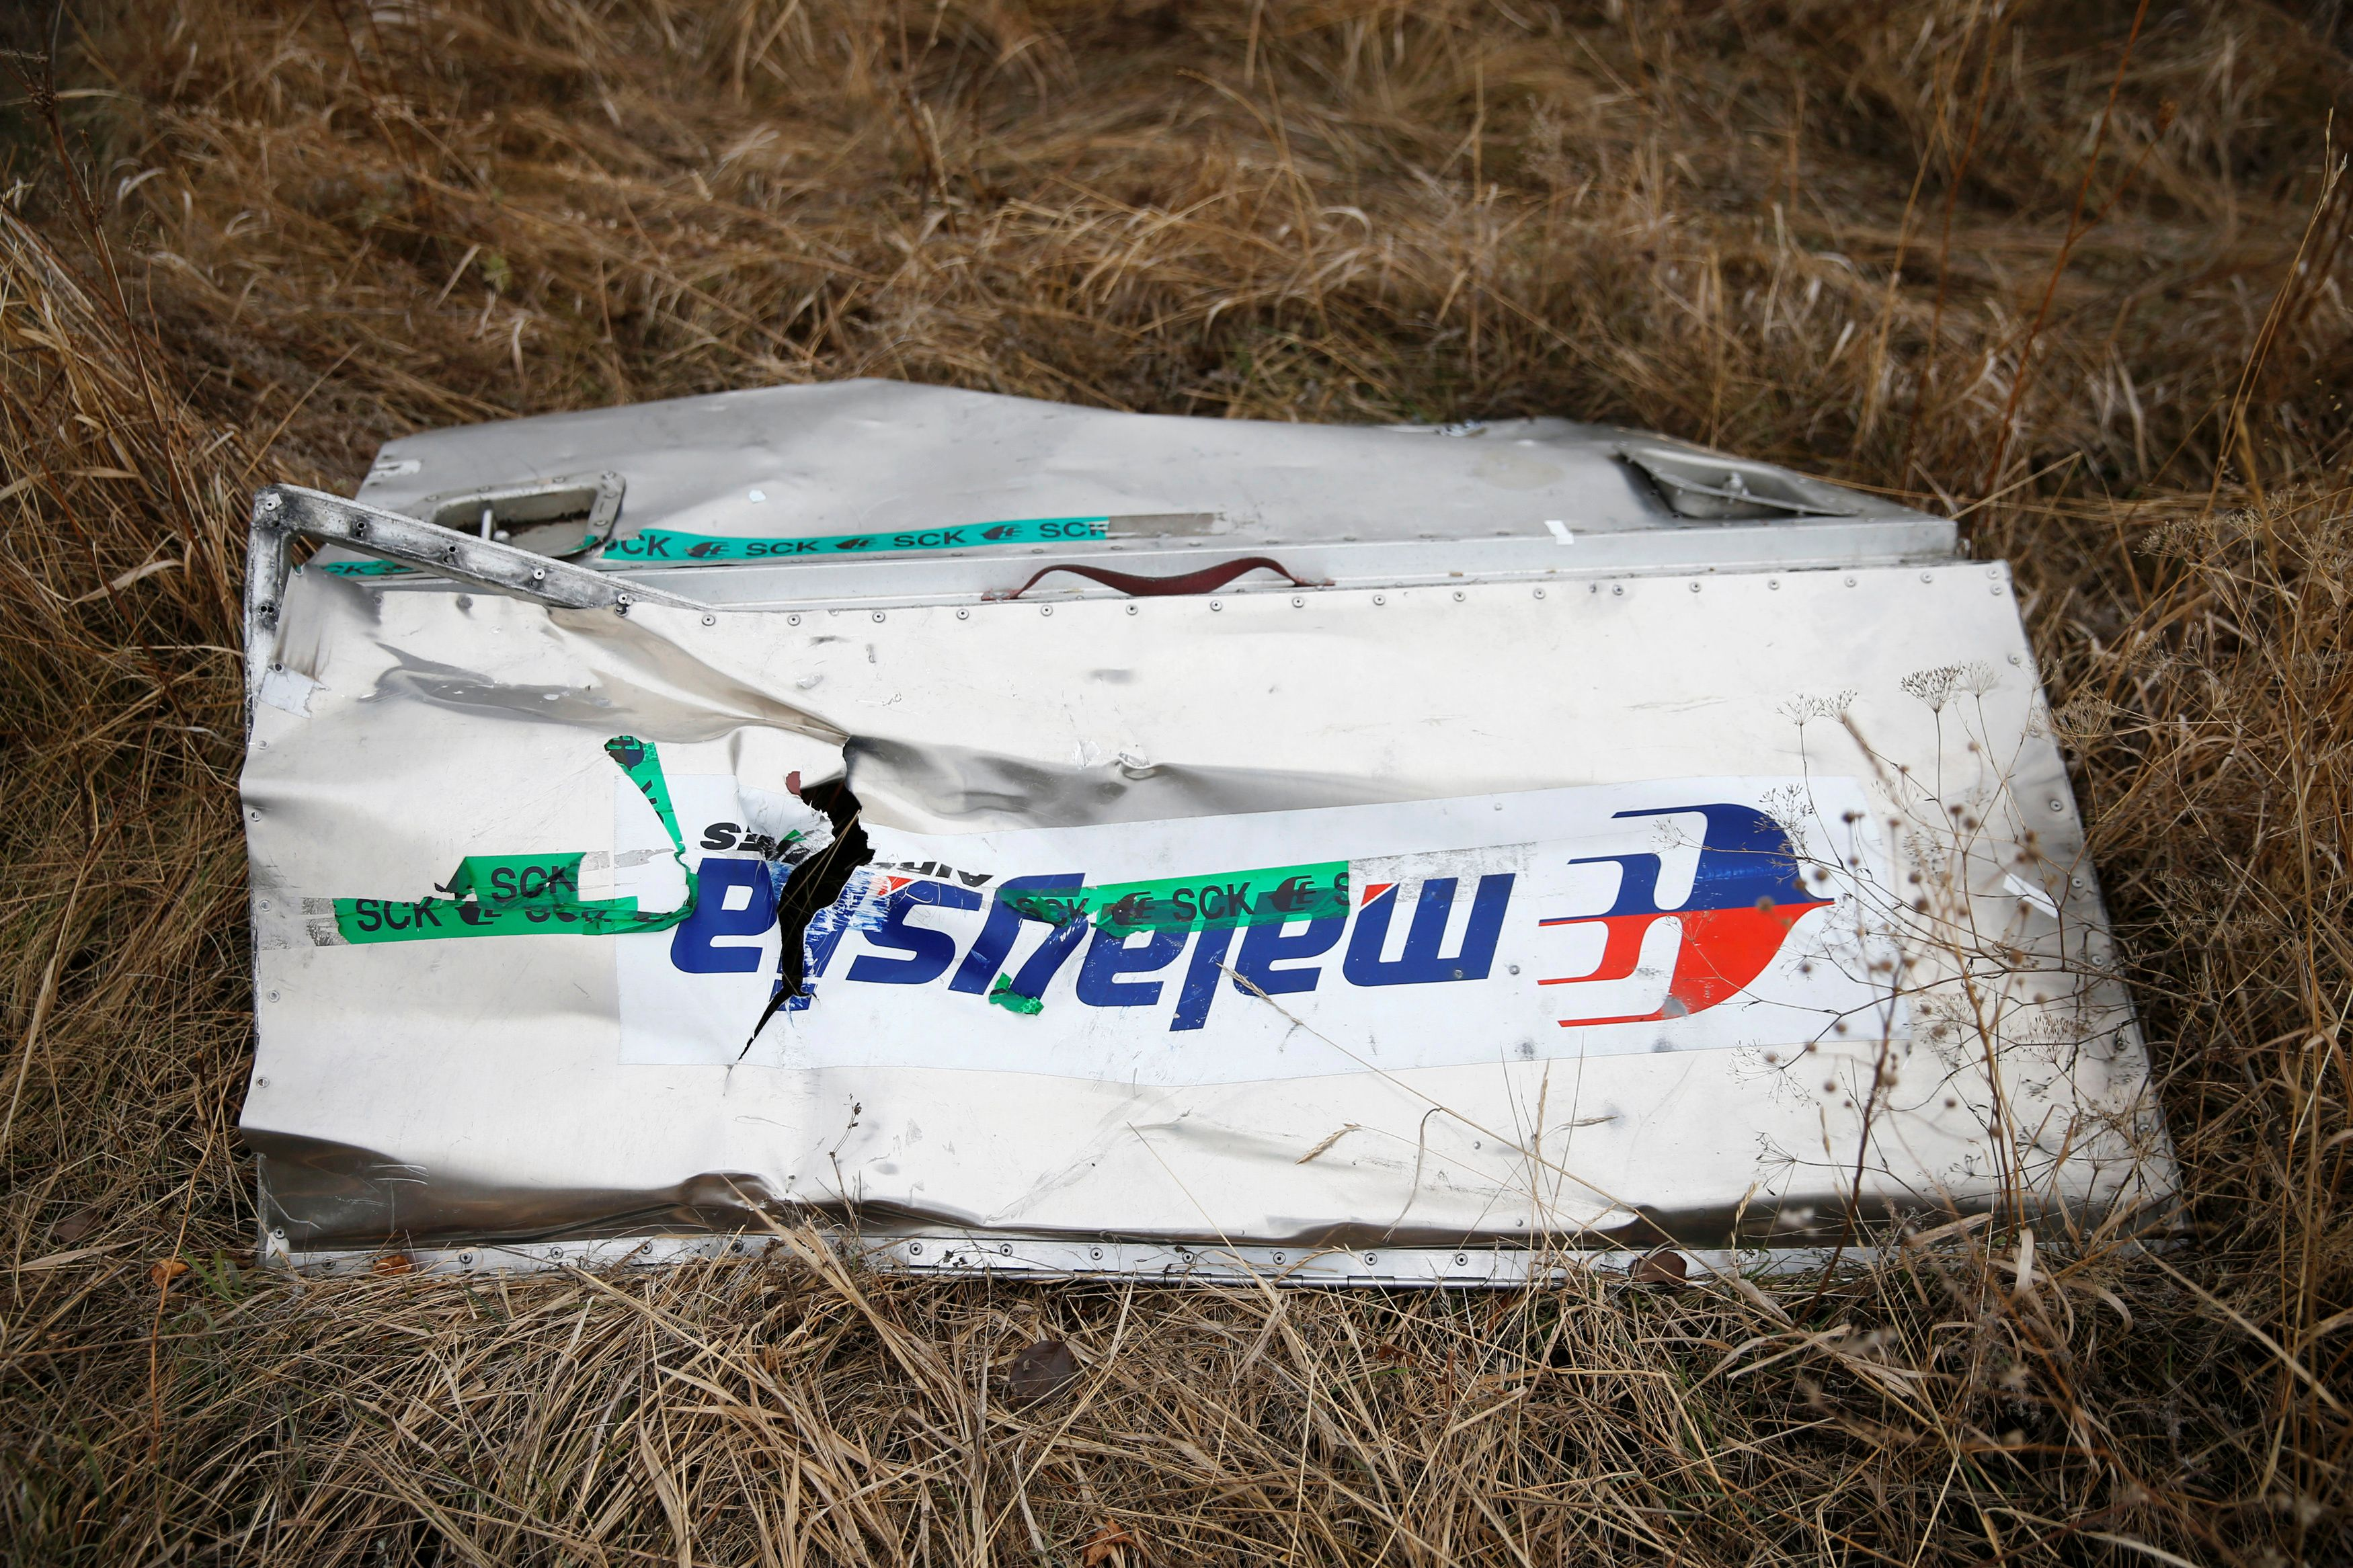 Malaysia Airlines πτήση MH370